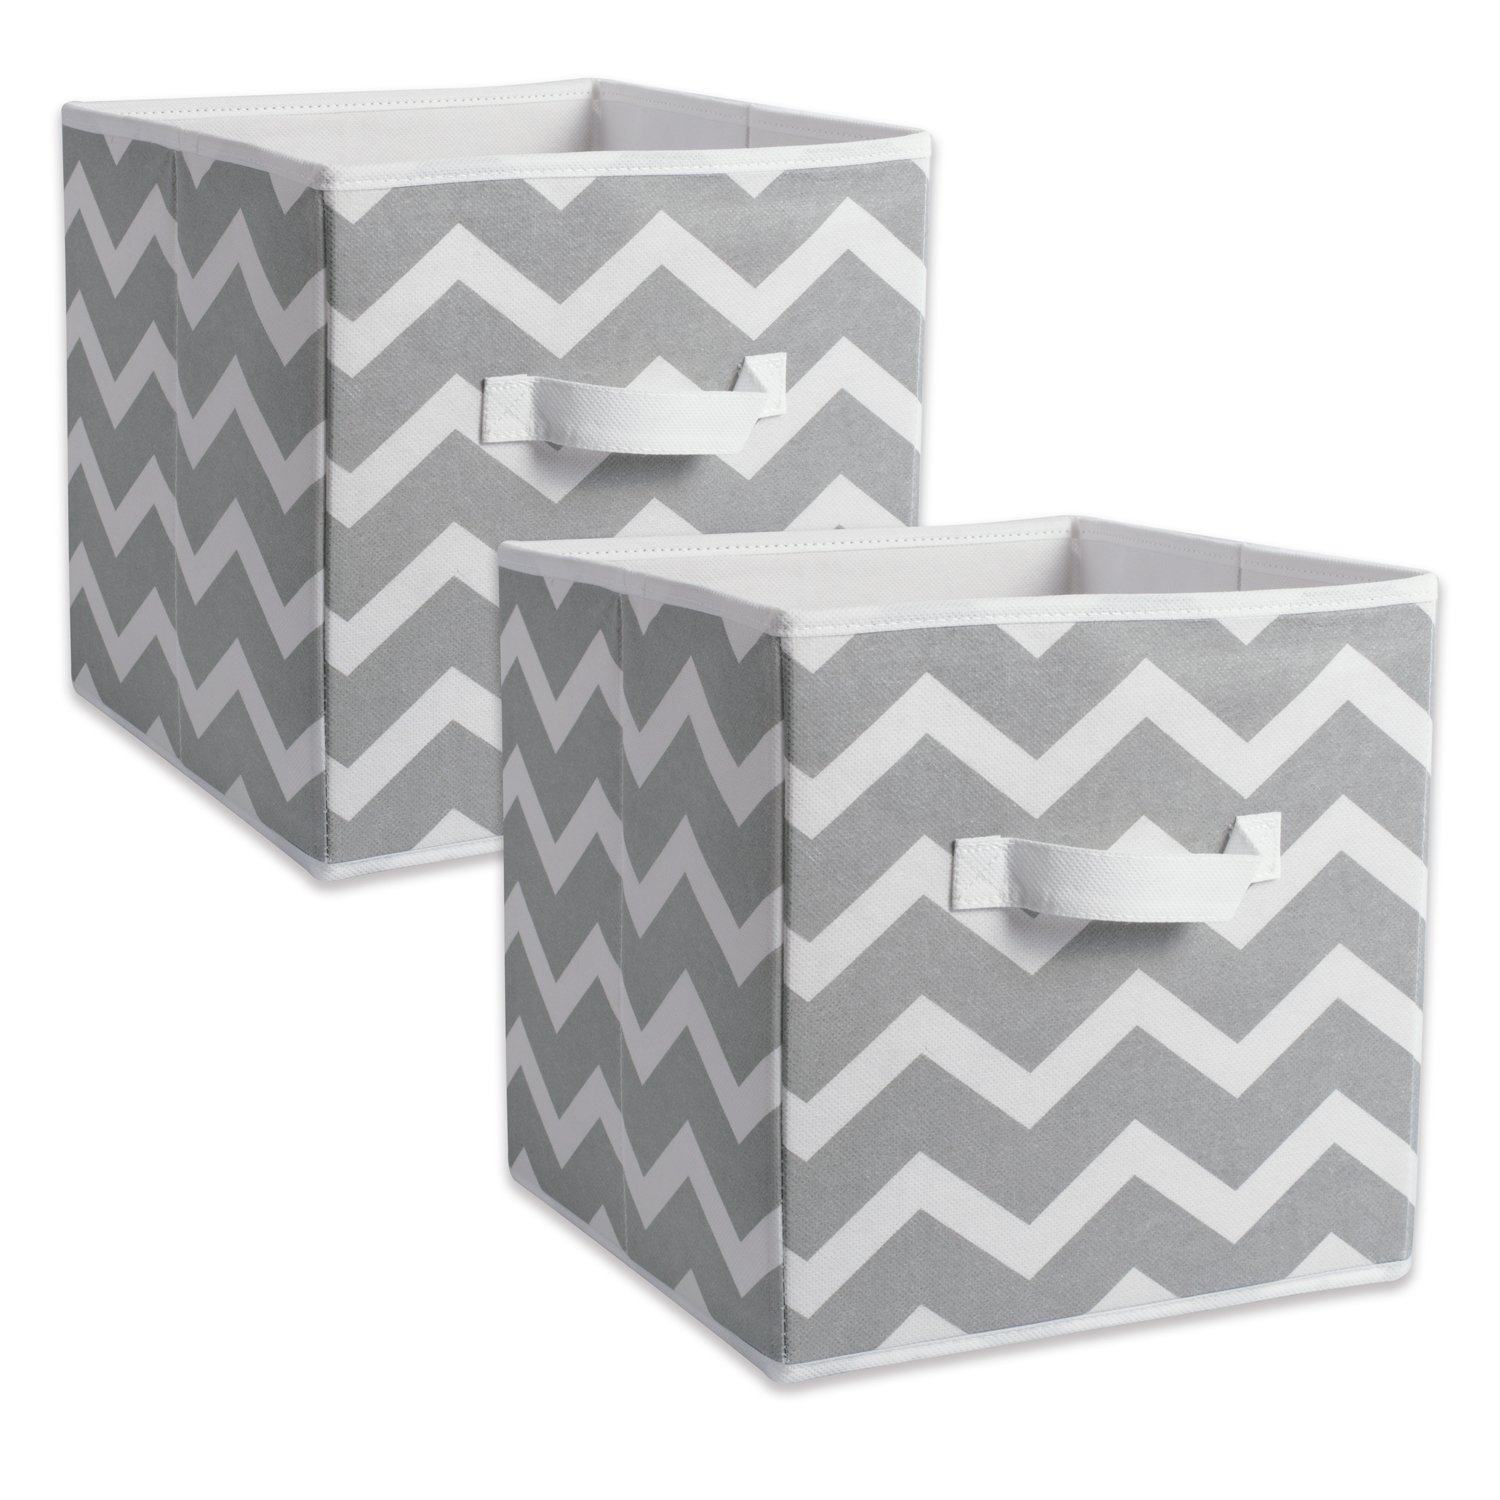 Charmant Amazon.com: DII Fabric Storage Bins For Nursery, Offices, Home  Organization, Containers Are Made To Fit Standard Cube Organizers  (11x11x11) Chevron Gray ...